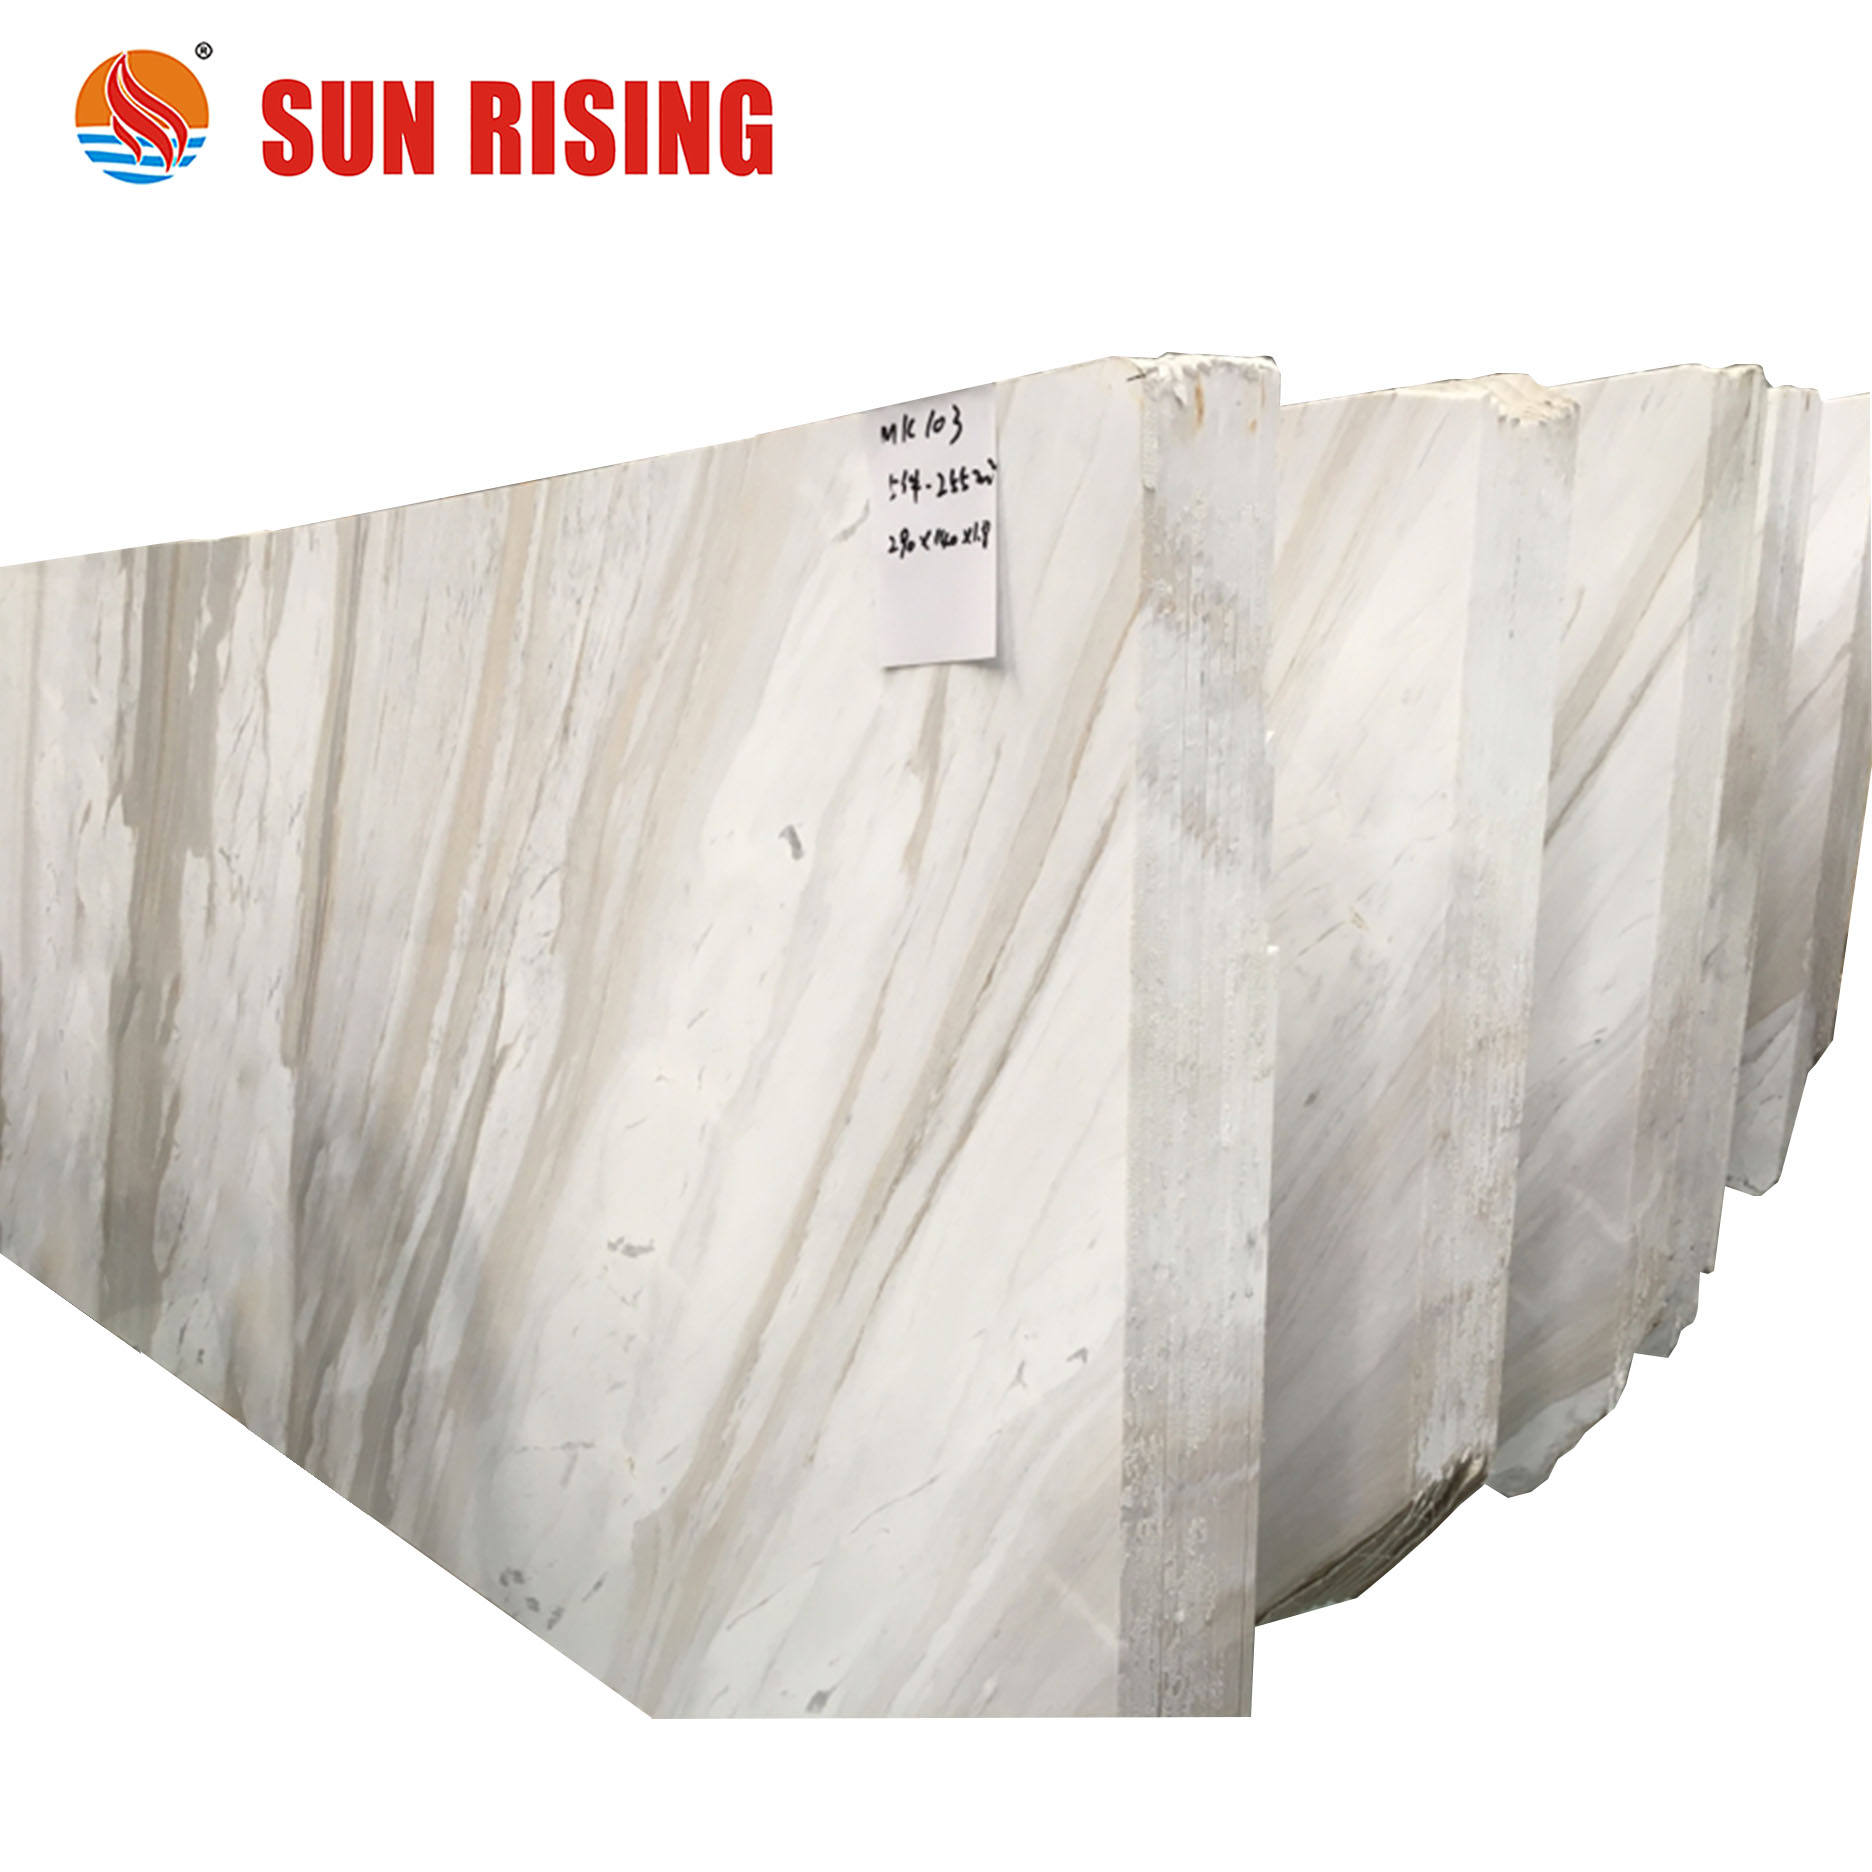 Natural Volakas White Marble Slab White Marble Big Slab For Wall Decorative